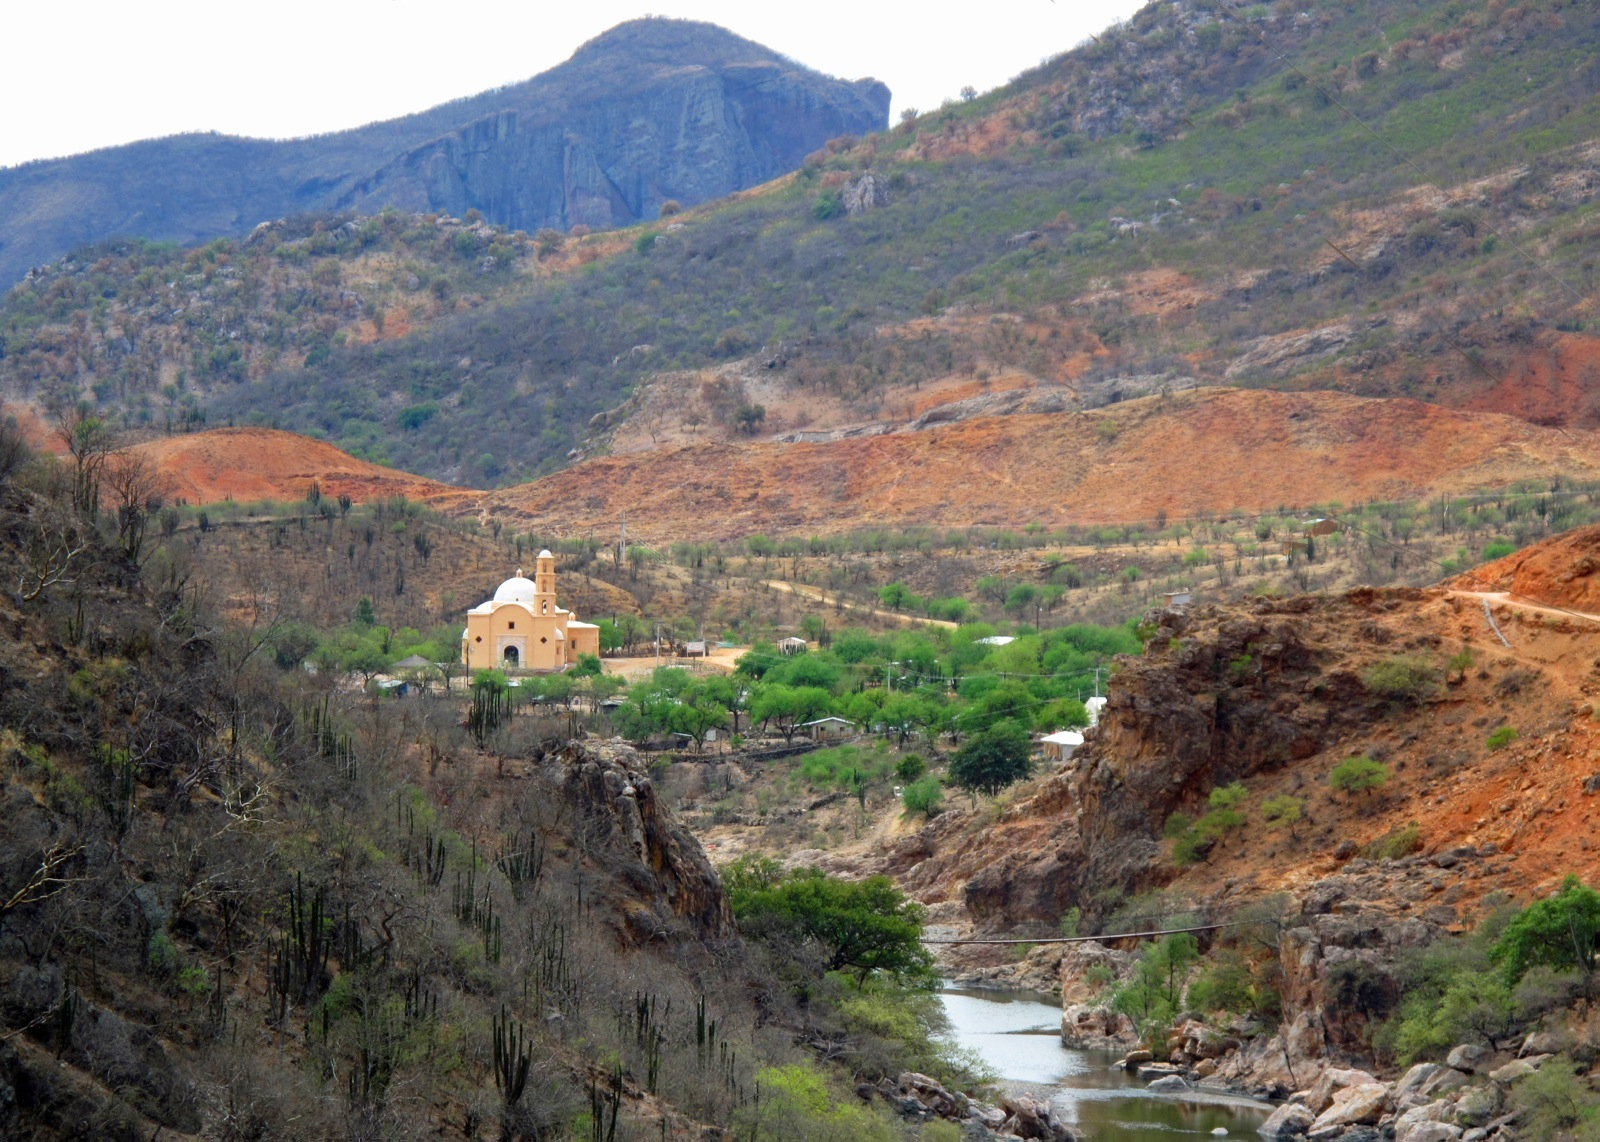 Beautiful view of the Lost Mission of Staevo church in Copper Canyon surrounded by rough terrain with cooper colored sand and green vegetation.